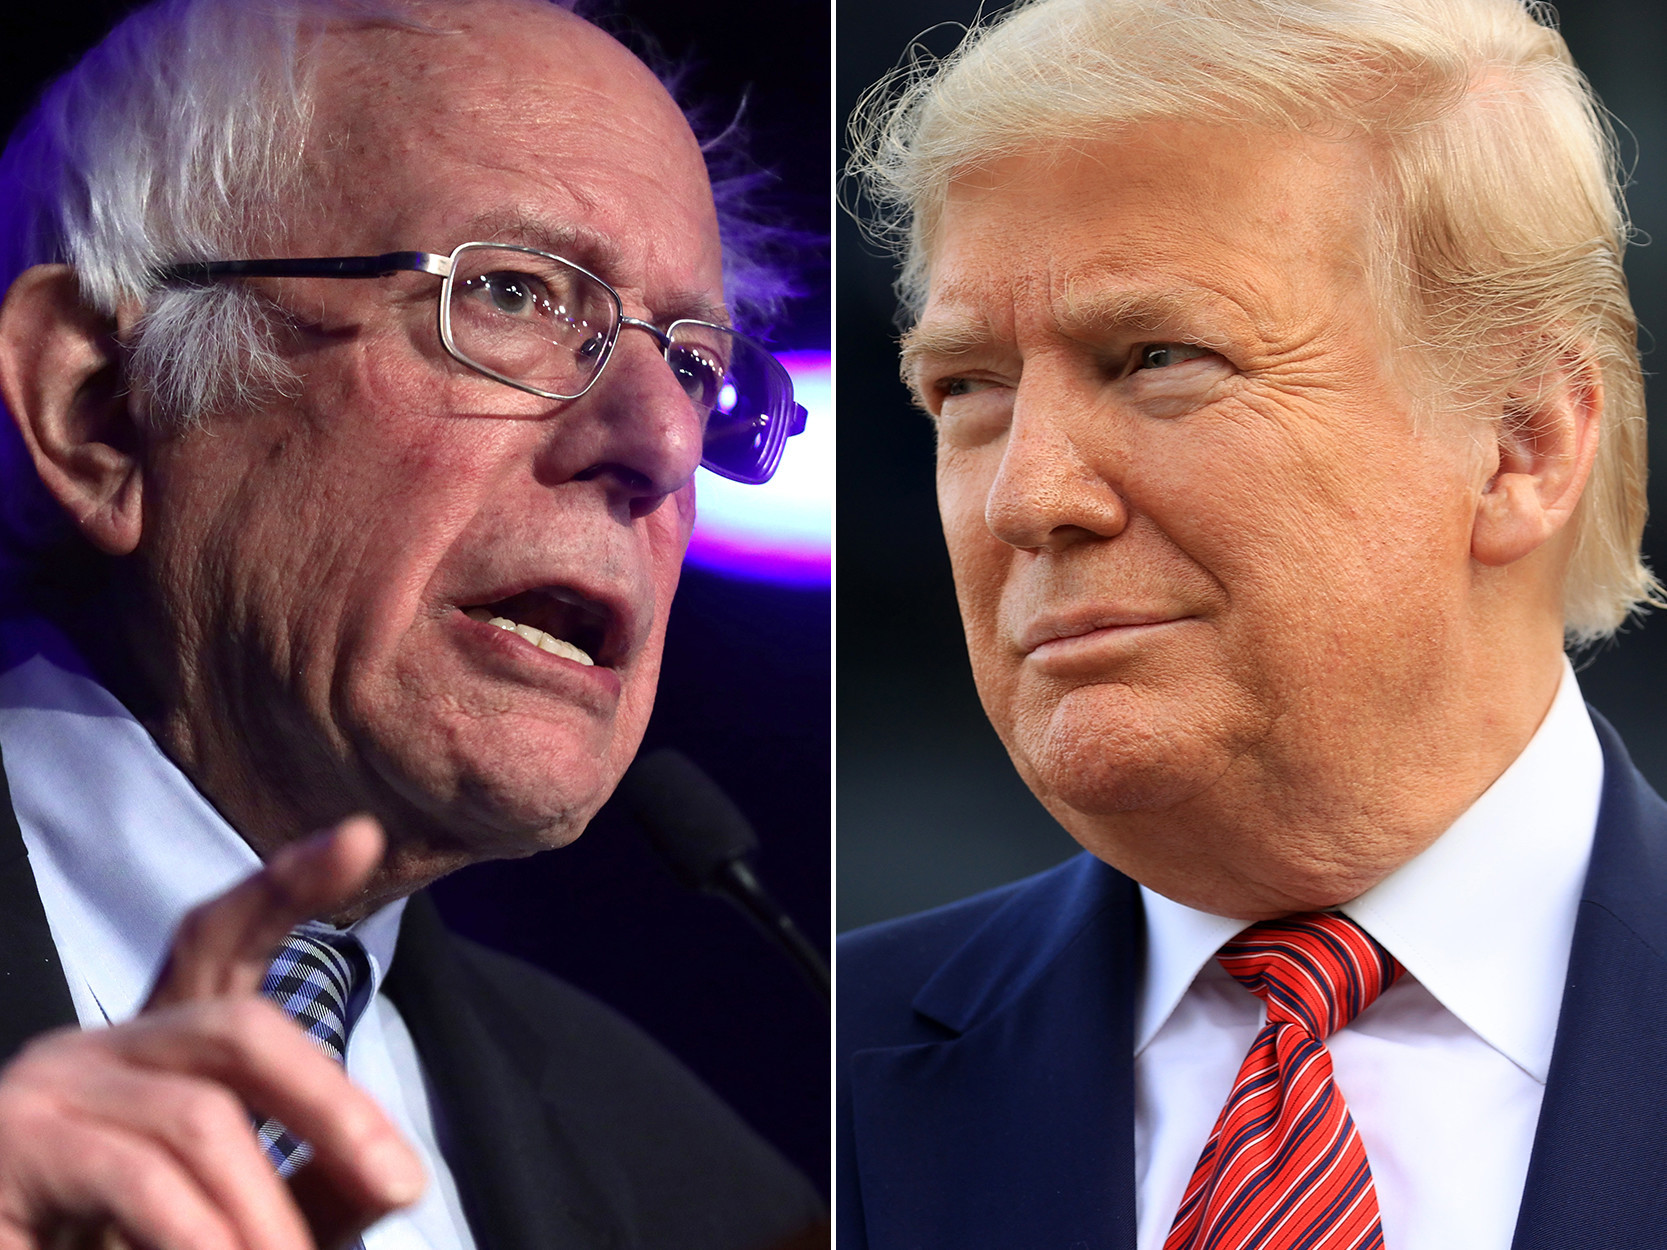 Trump's Tuesday tweets claim Democrats will rig convention to stop Bernie Sanders